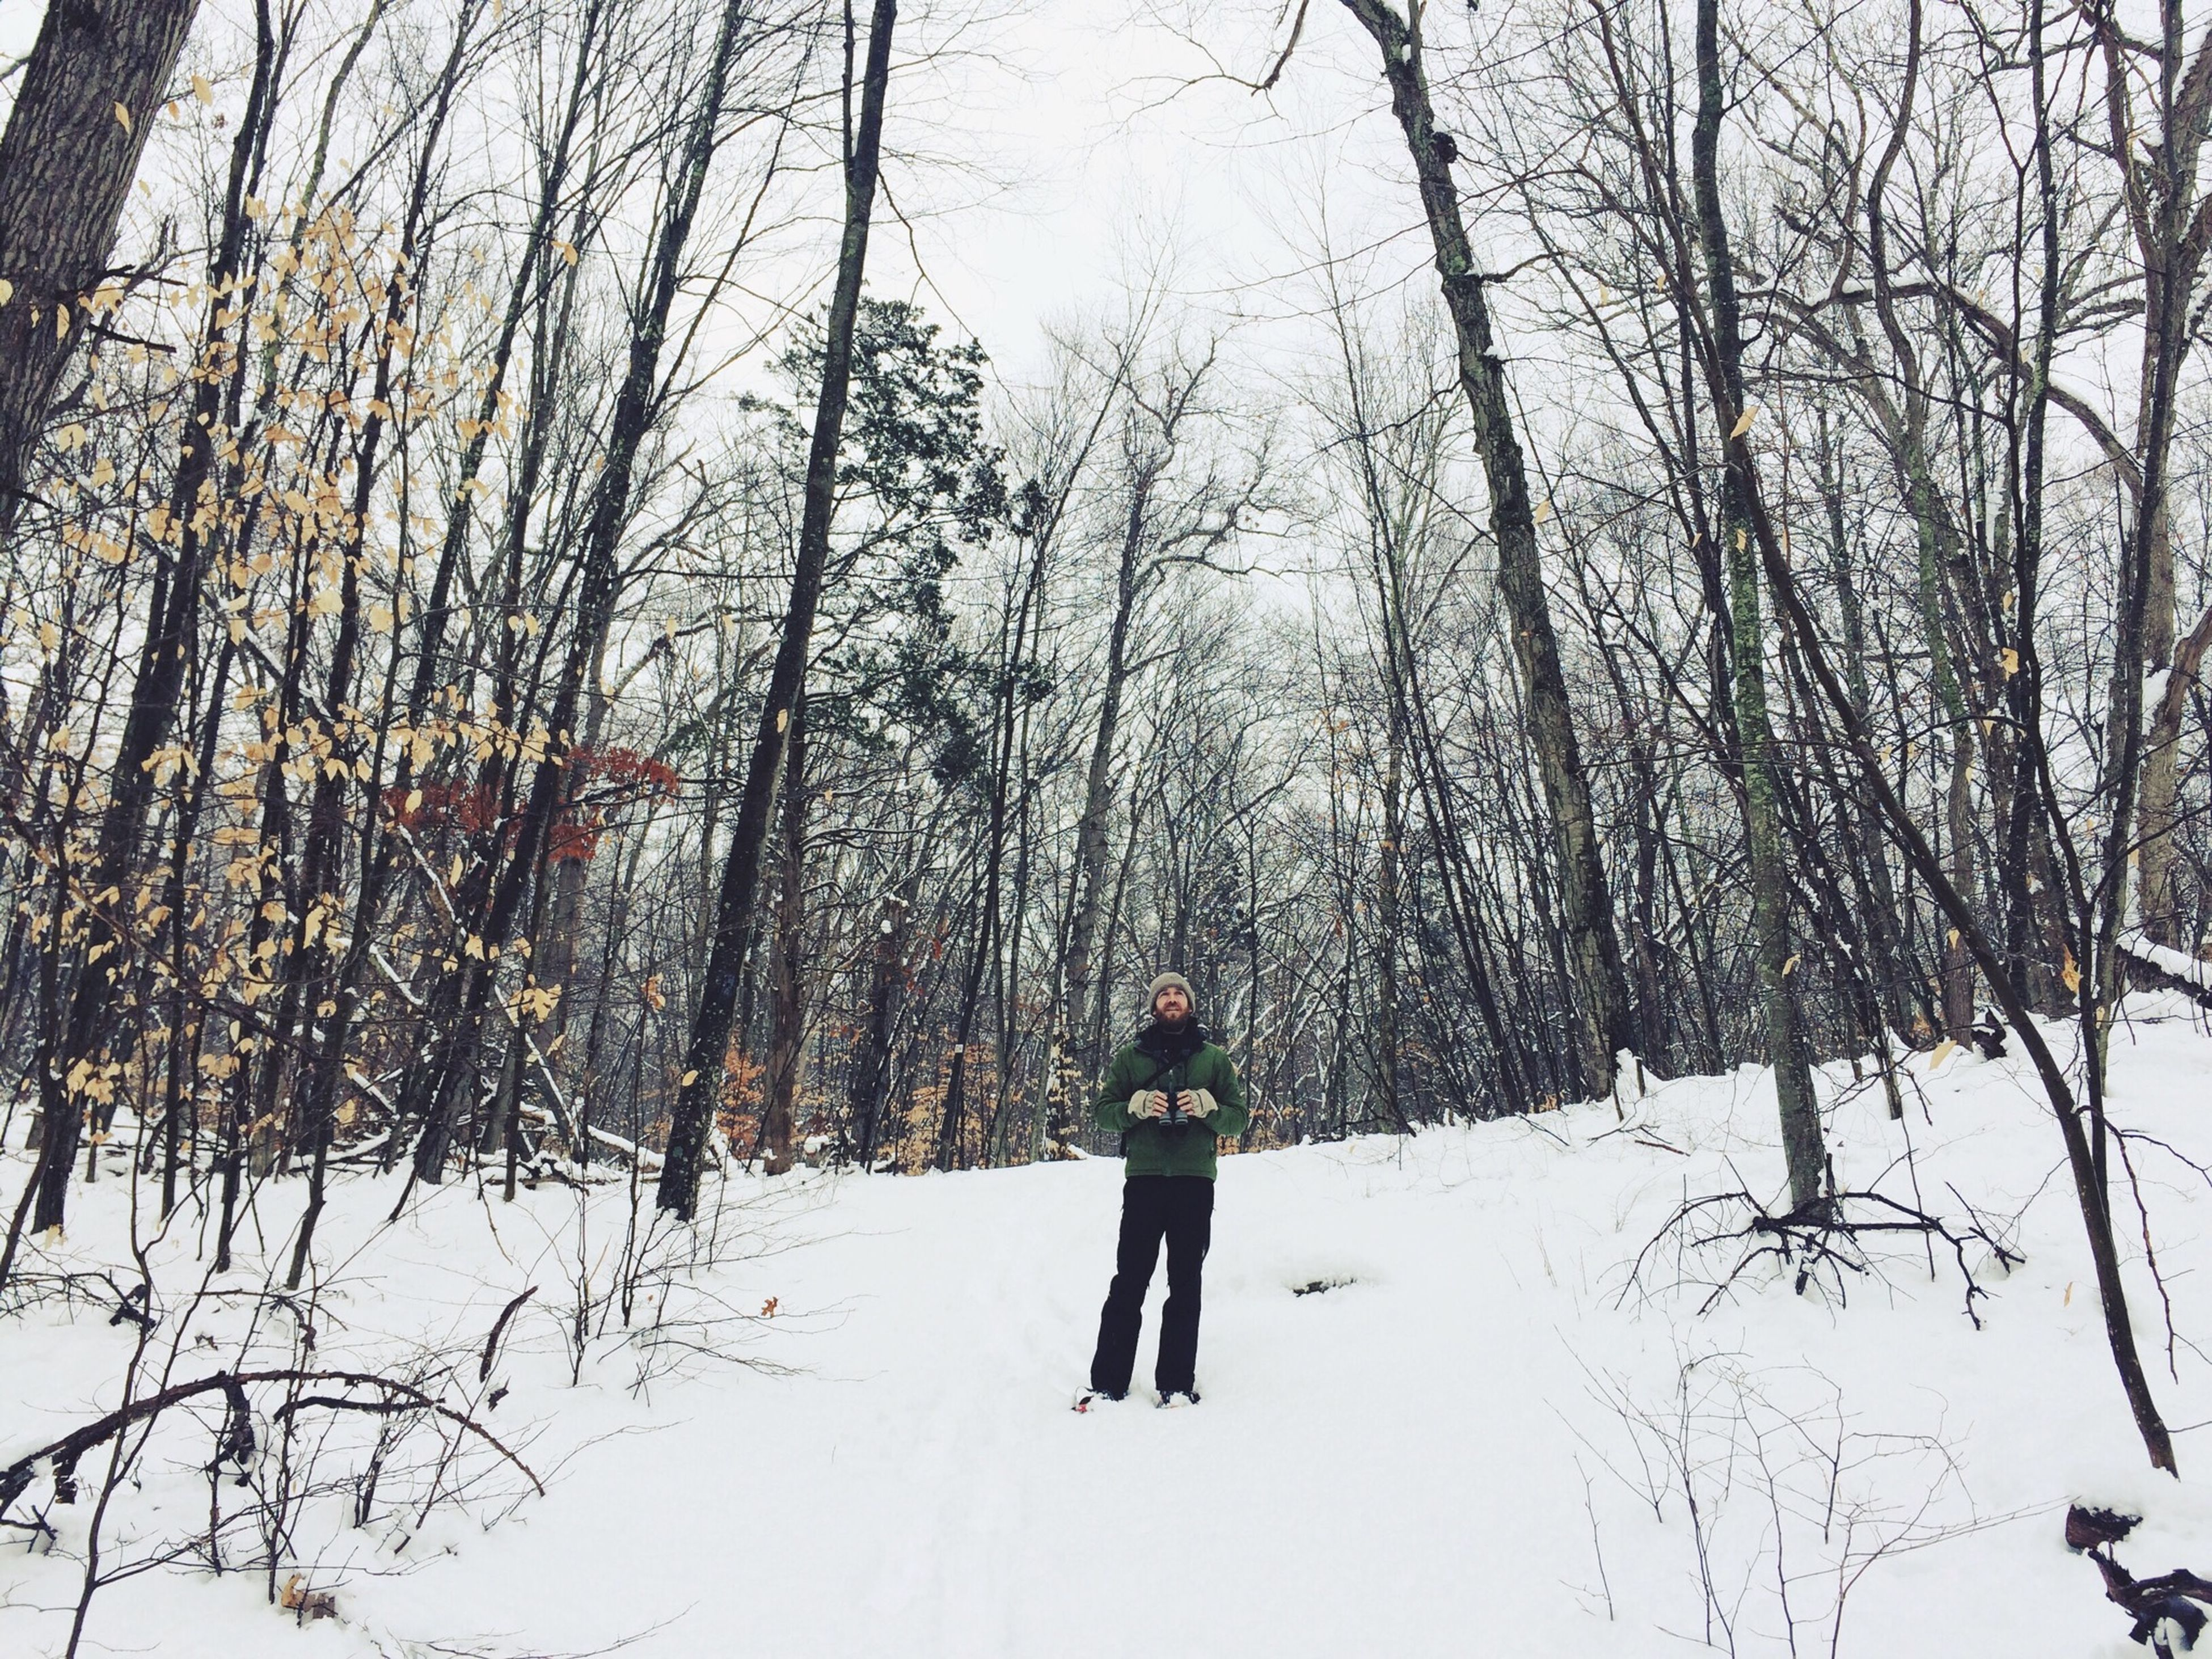 winter, snow, cold temperature, season, tree, lifestyles, full length, walking, bare tree, leisure activity, rear view, weather, nature, tranquility, men, branch, covering, tranquil scene